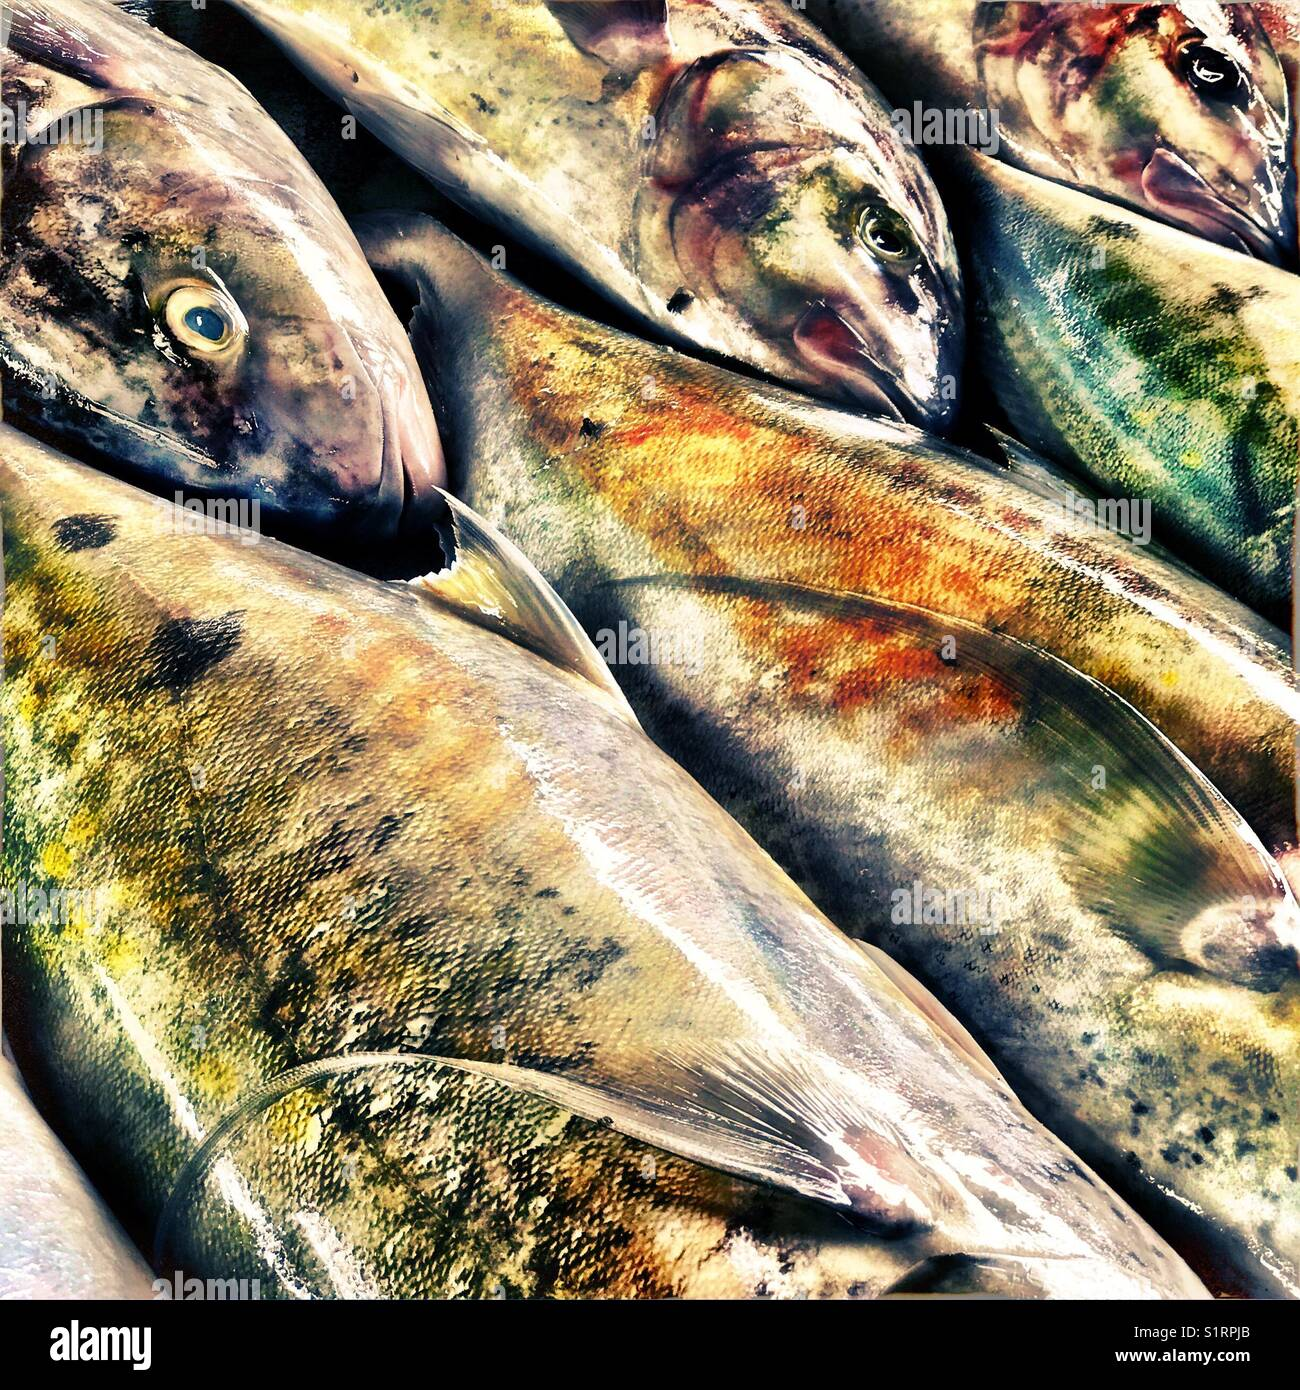 Fish in market - Stock Image